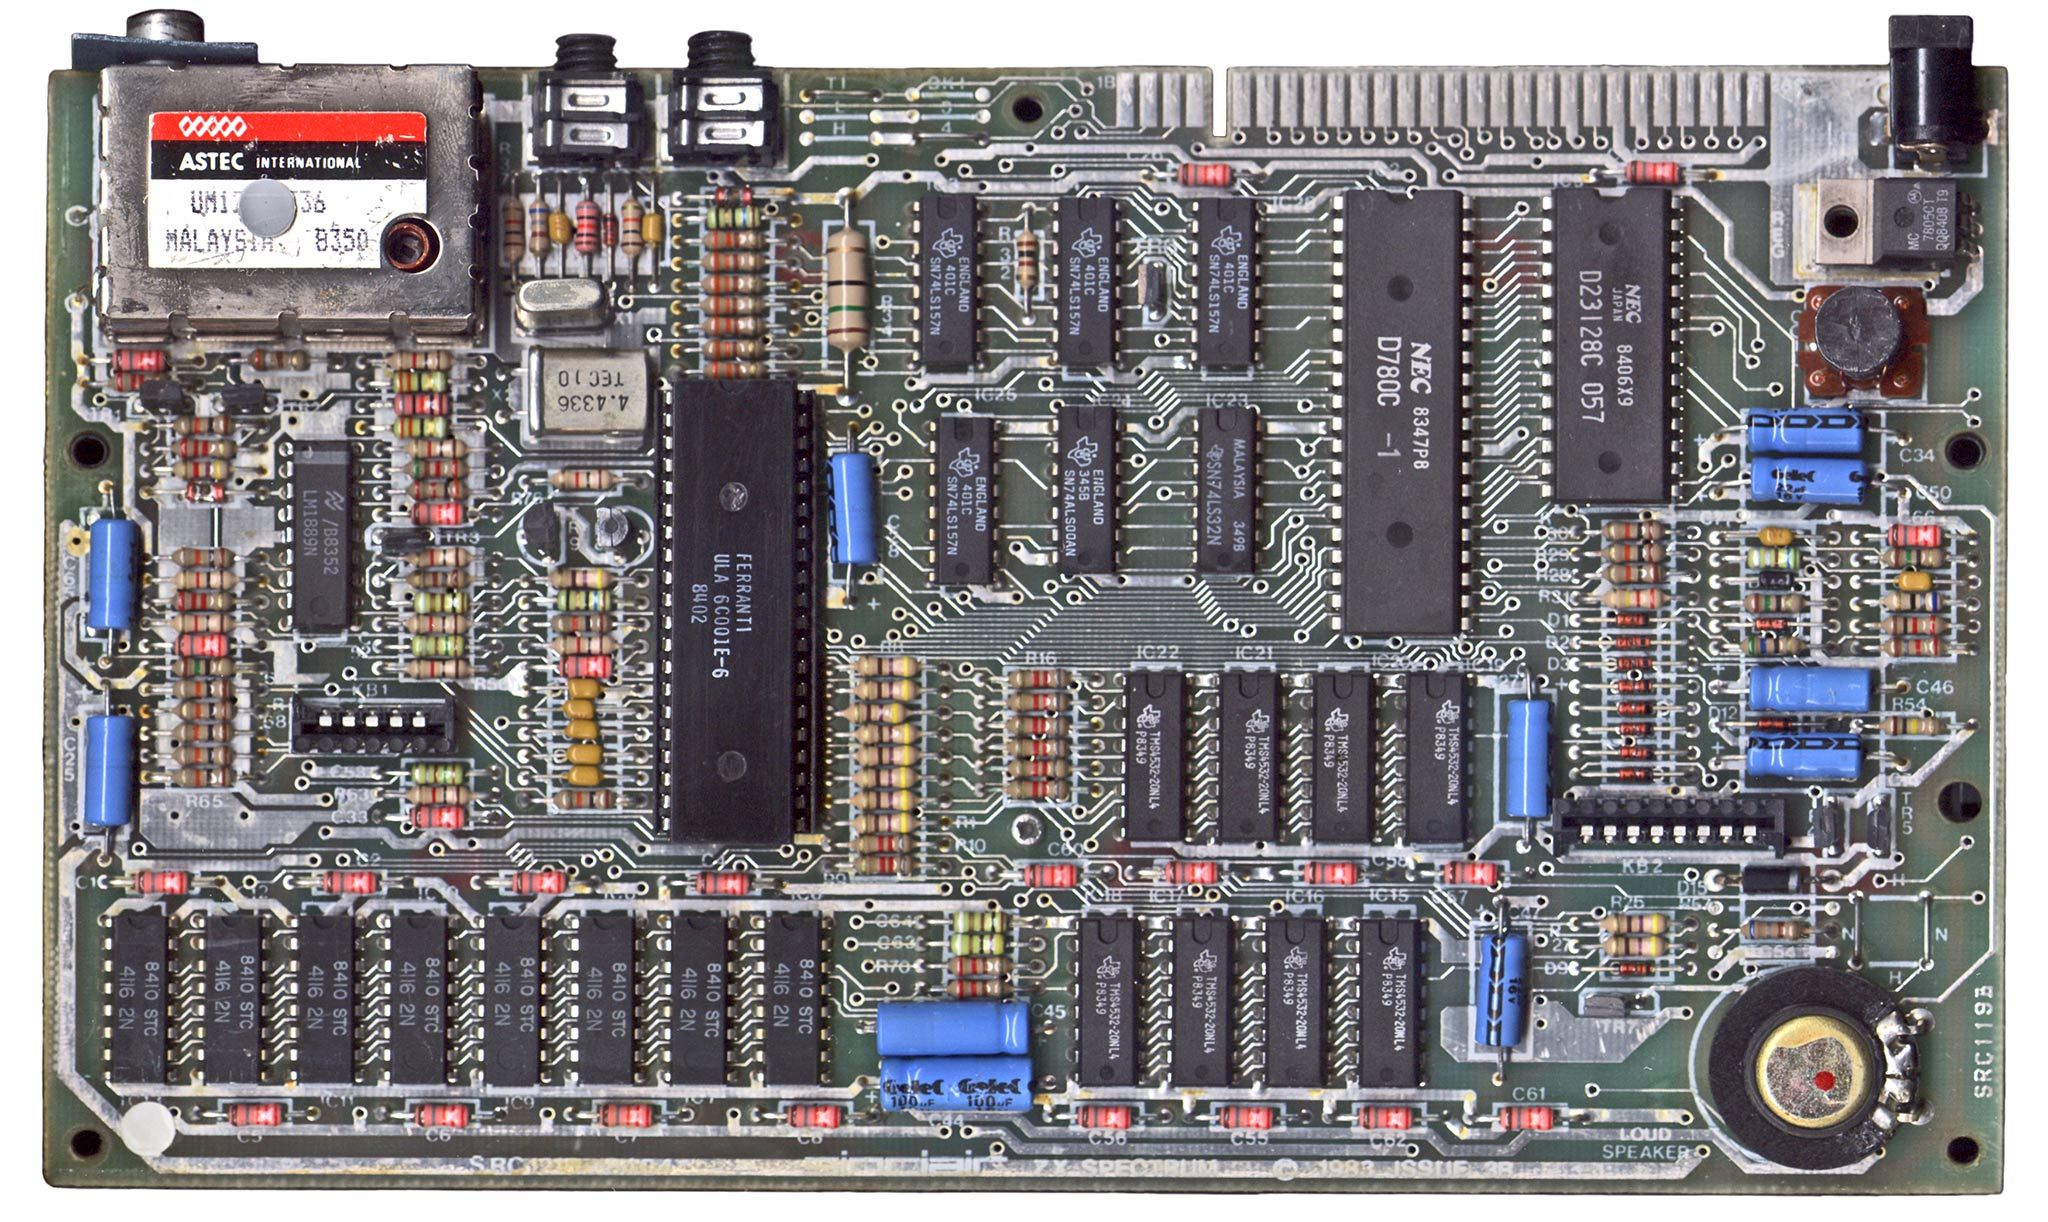 Zx Spectrum 48k Motherboard Issue 3b 1983 Heat Sink Removed Electronic Schematics Gaming Computer Computer